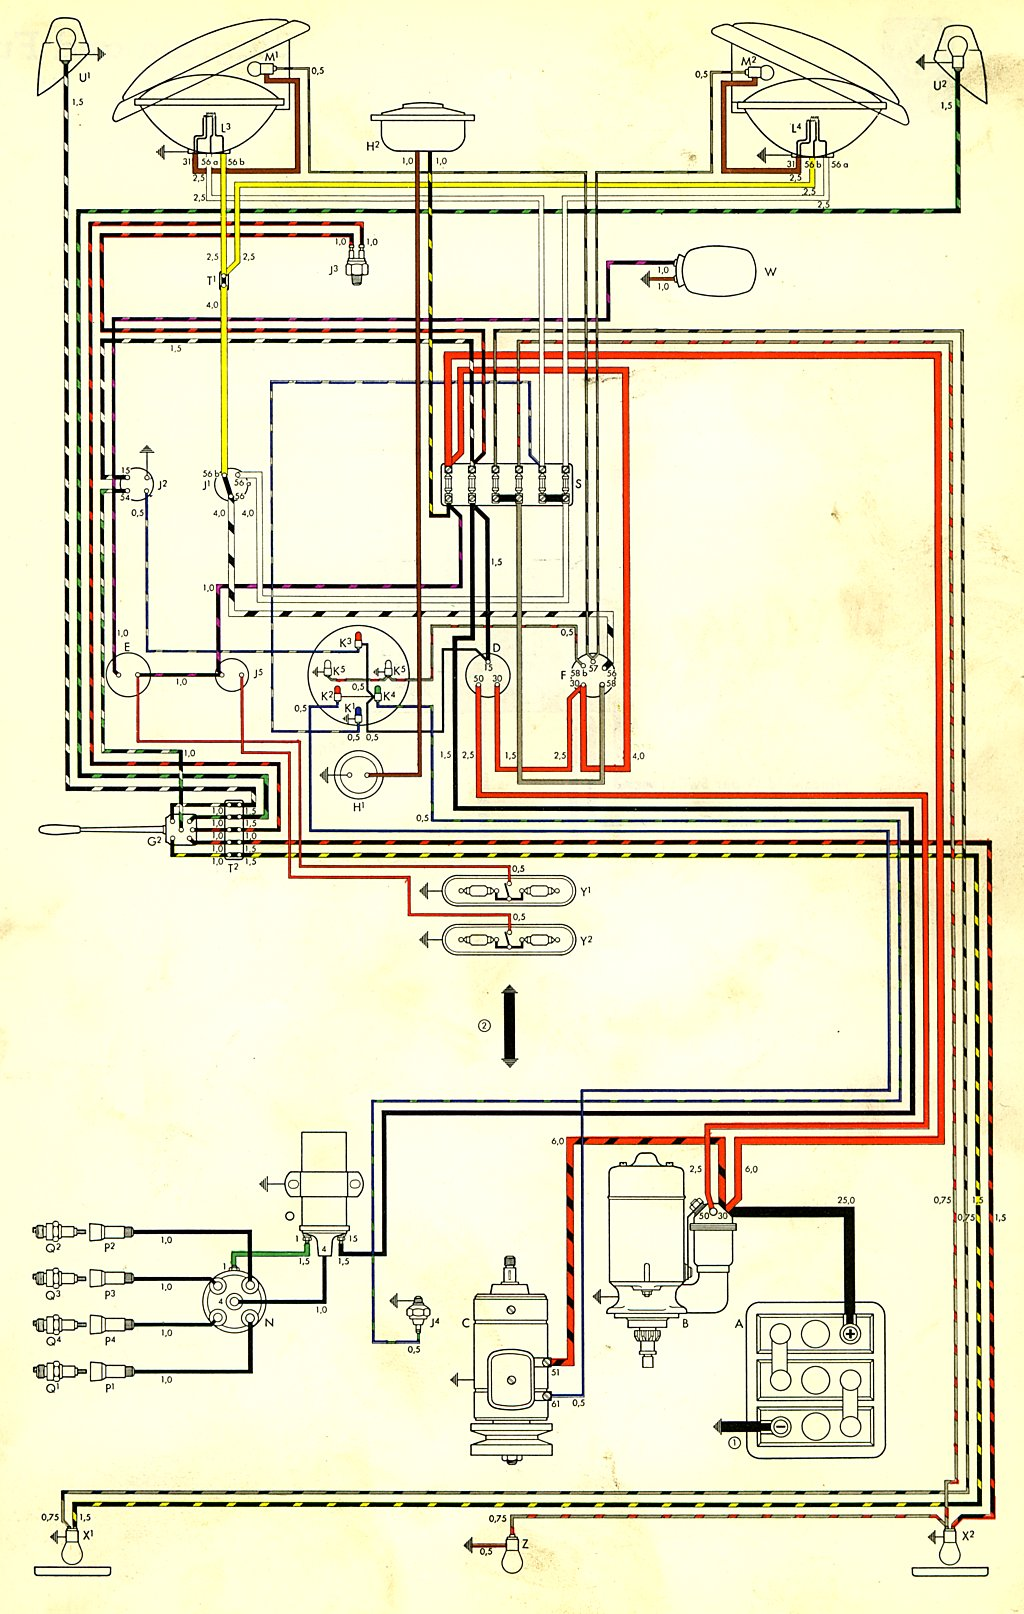 Wiring Diagram 1970 Dodge Charger Schematics Diagrams Plymouth Gtx 1968 Block And Schematic U2022 Rh Lazysupply Co